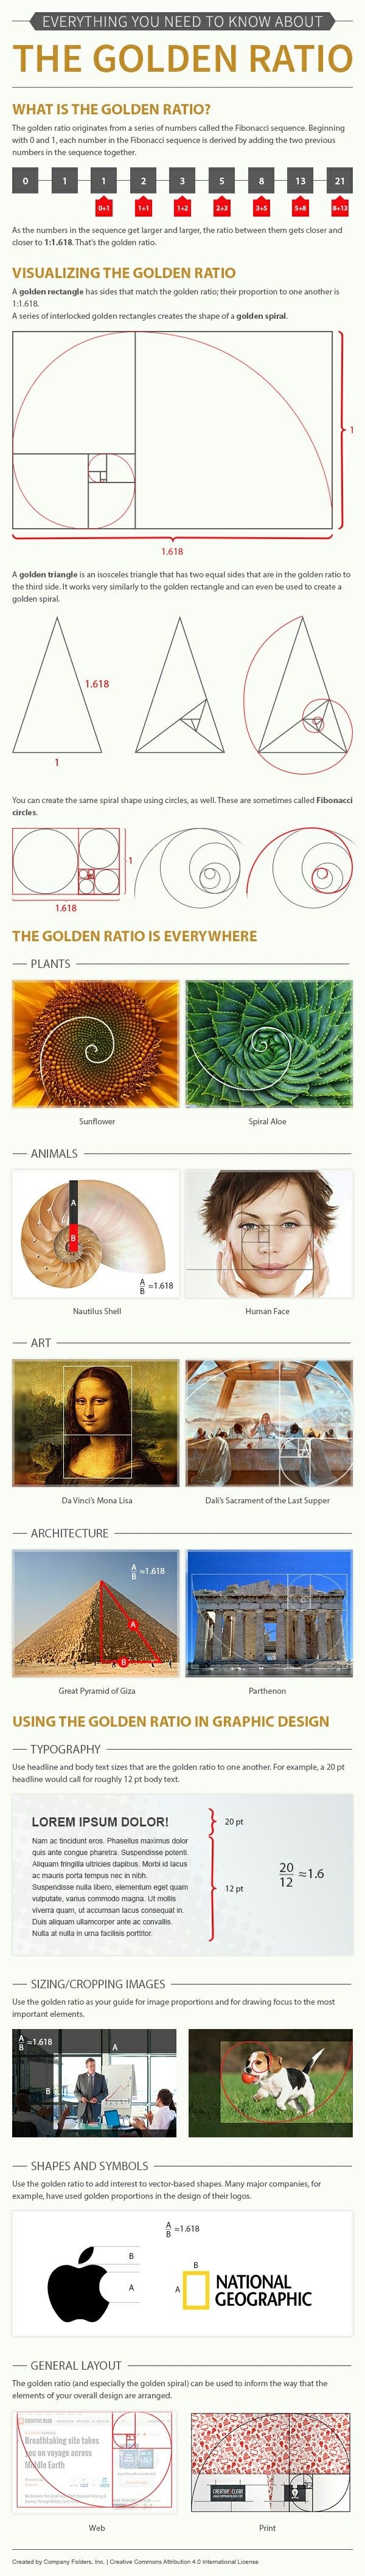 The golden ratio for design.